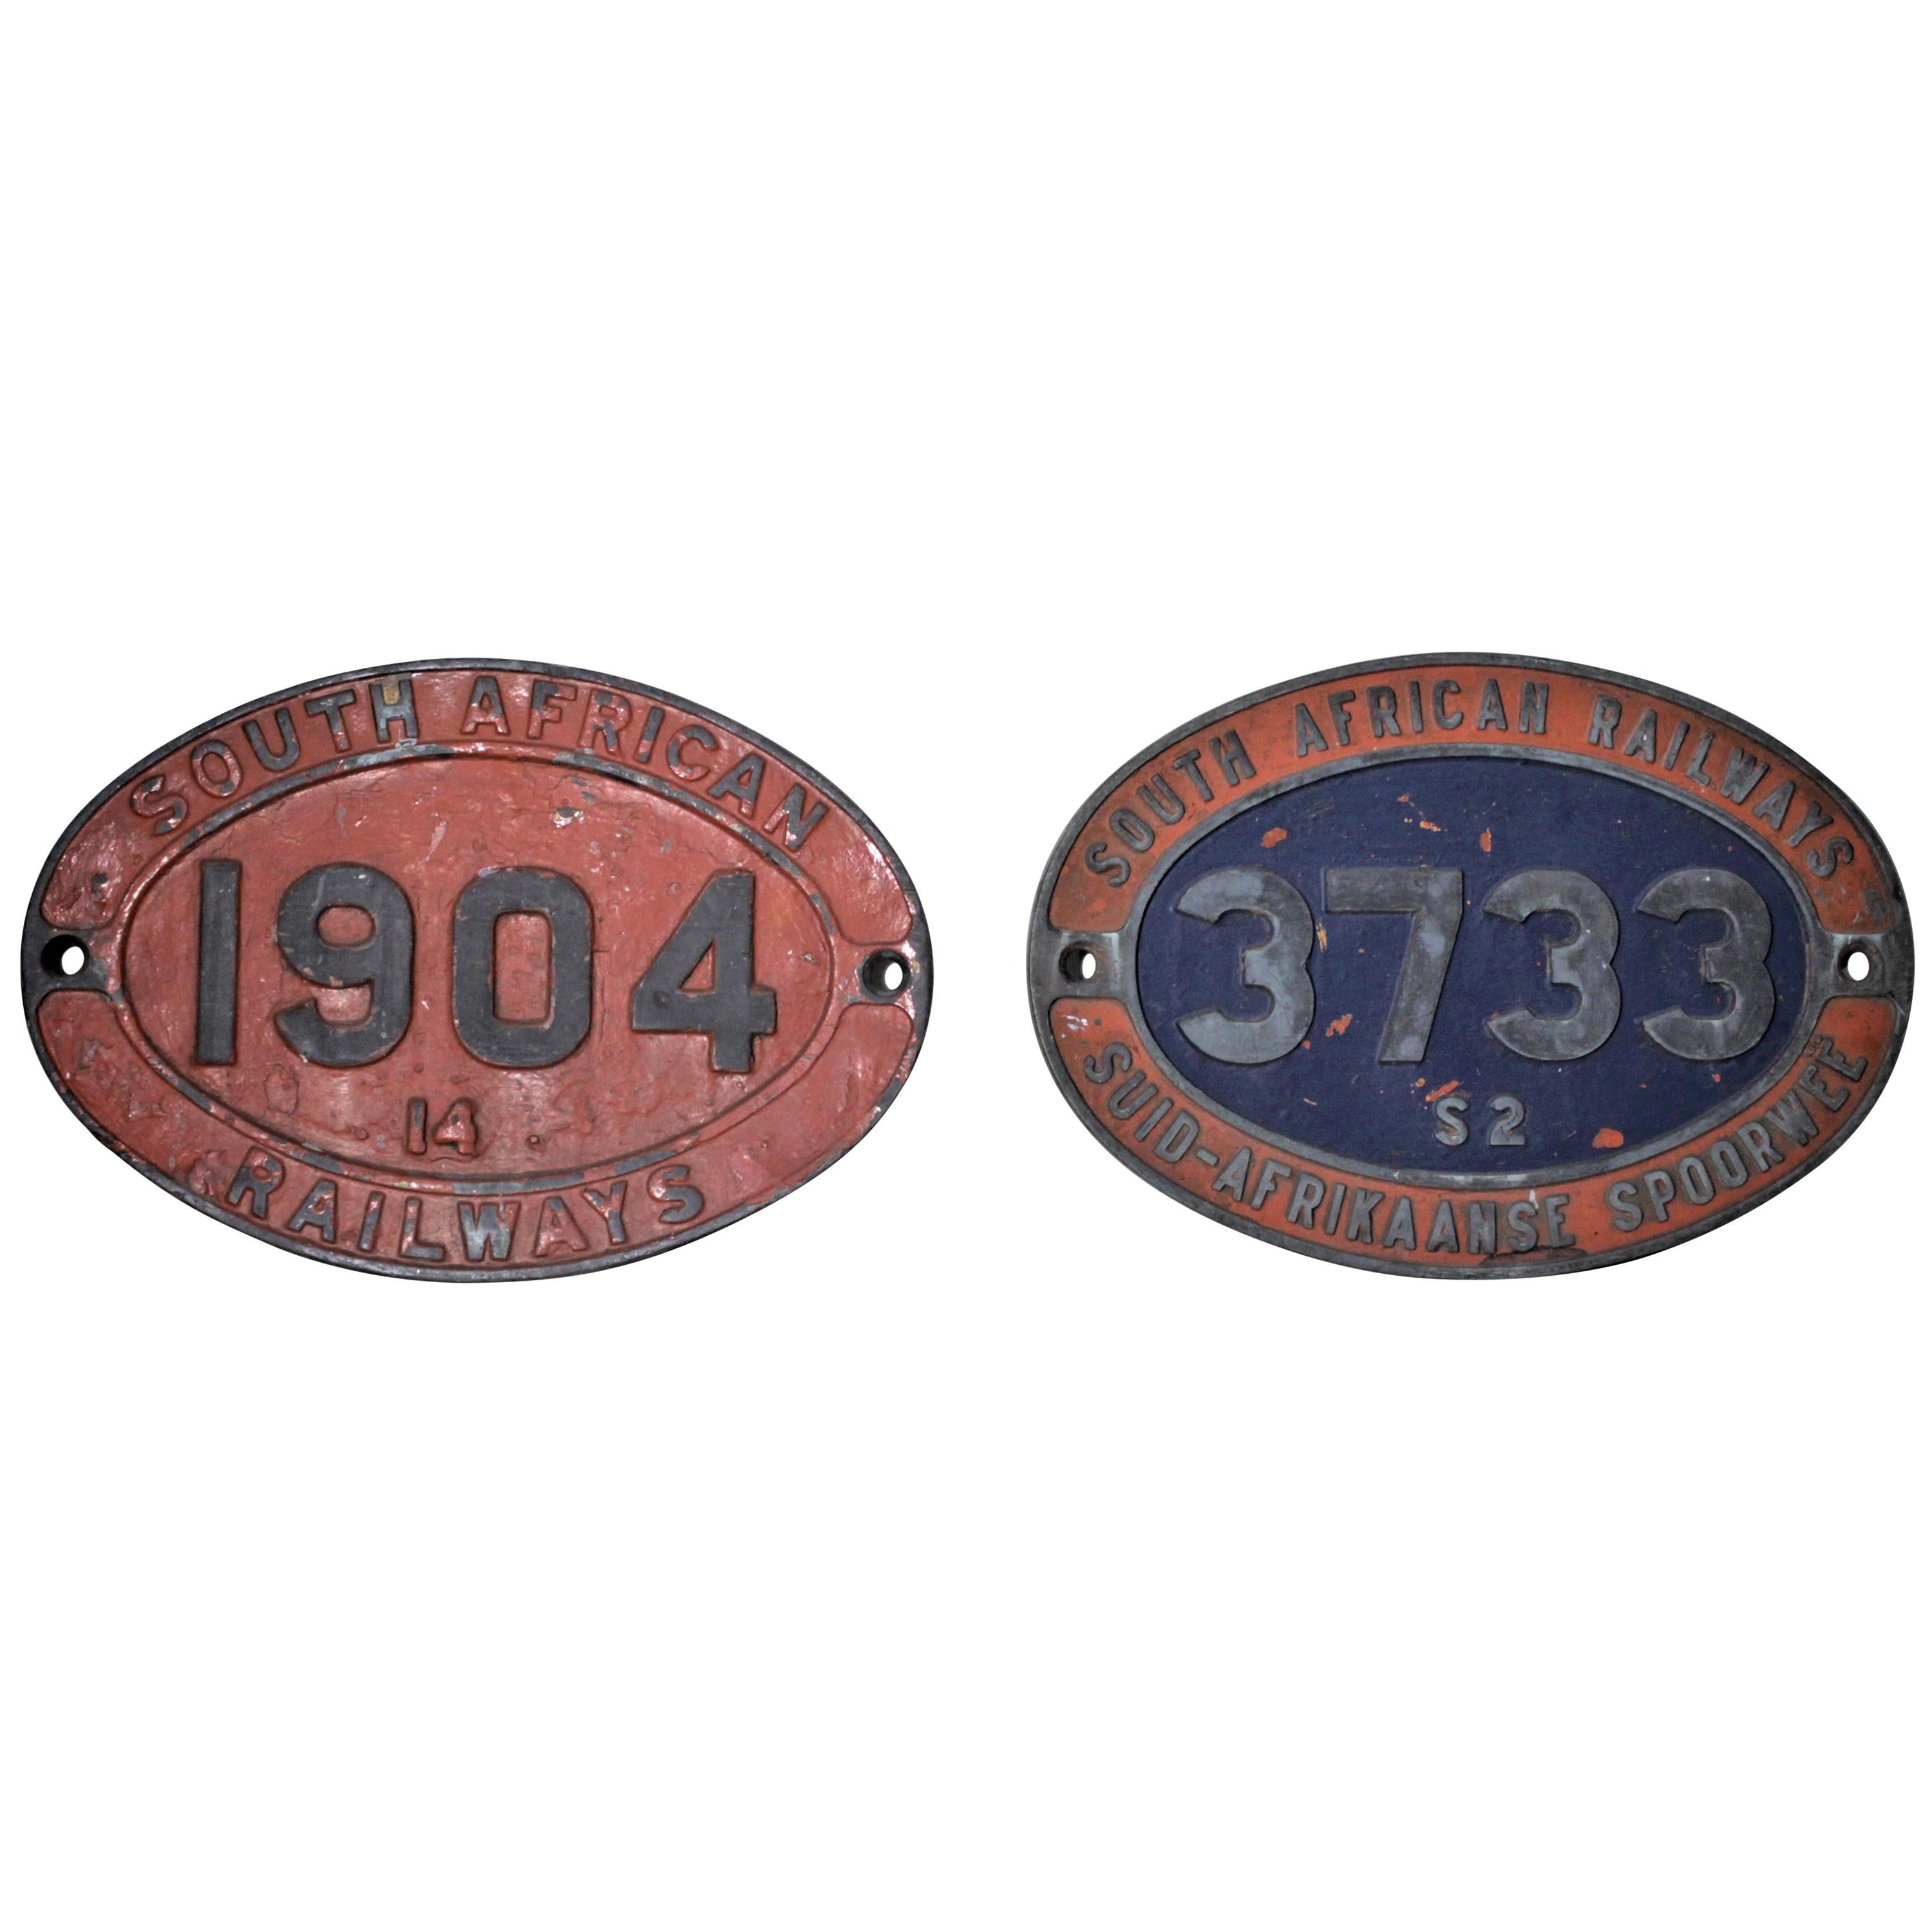 Pair of Antique South African Railway Cast Iron Locomotive Plaques or Badges